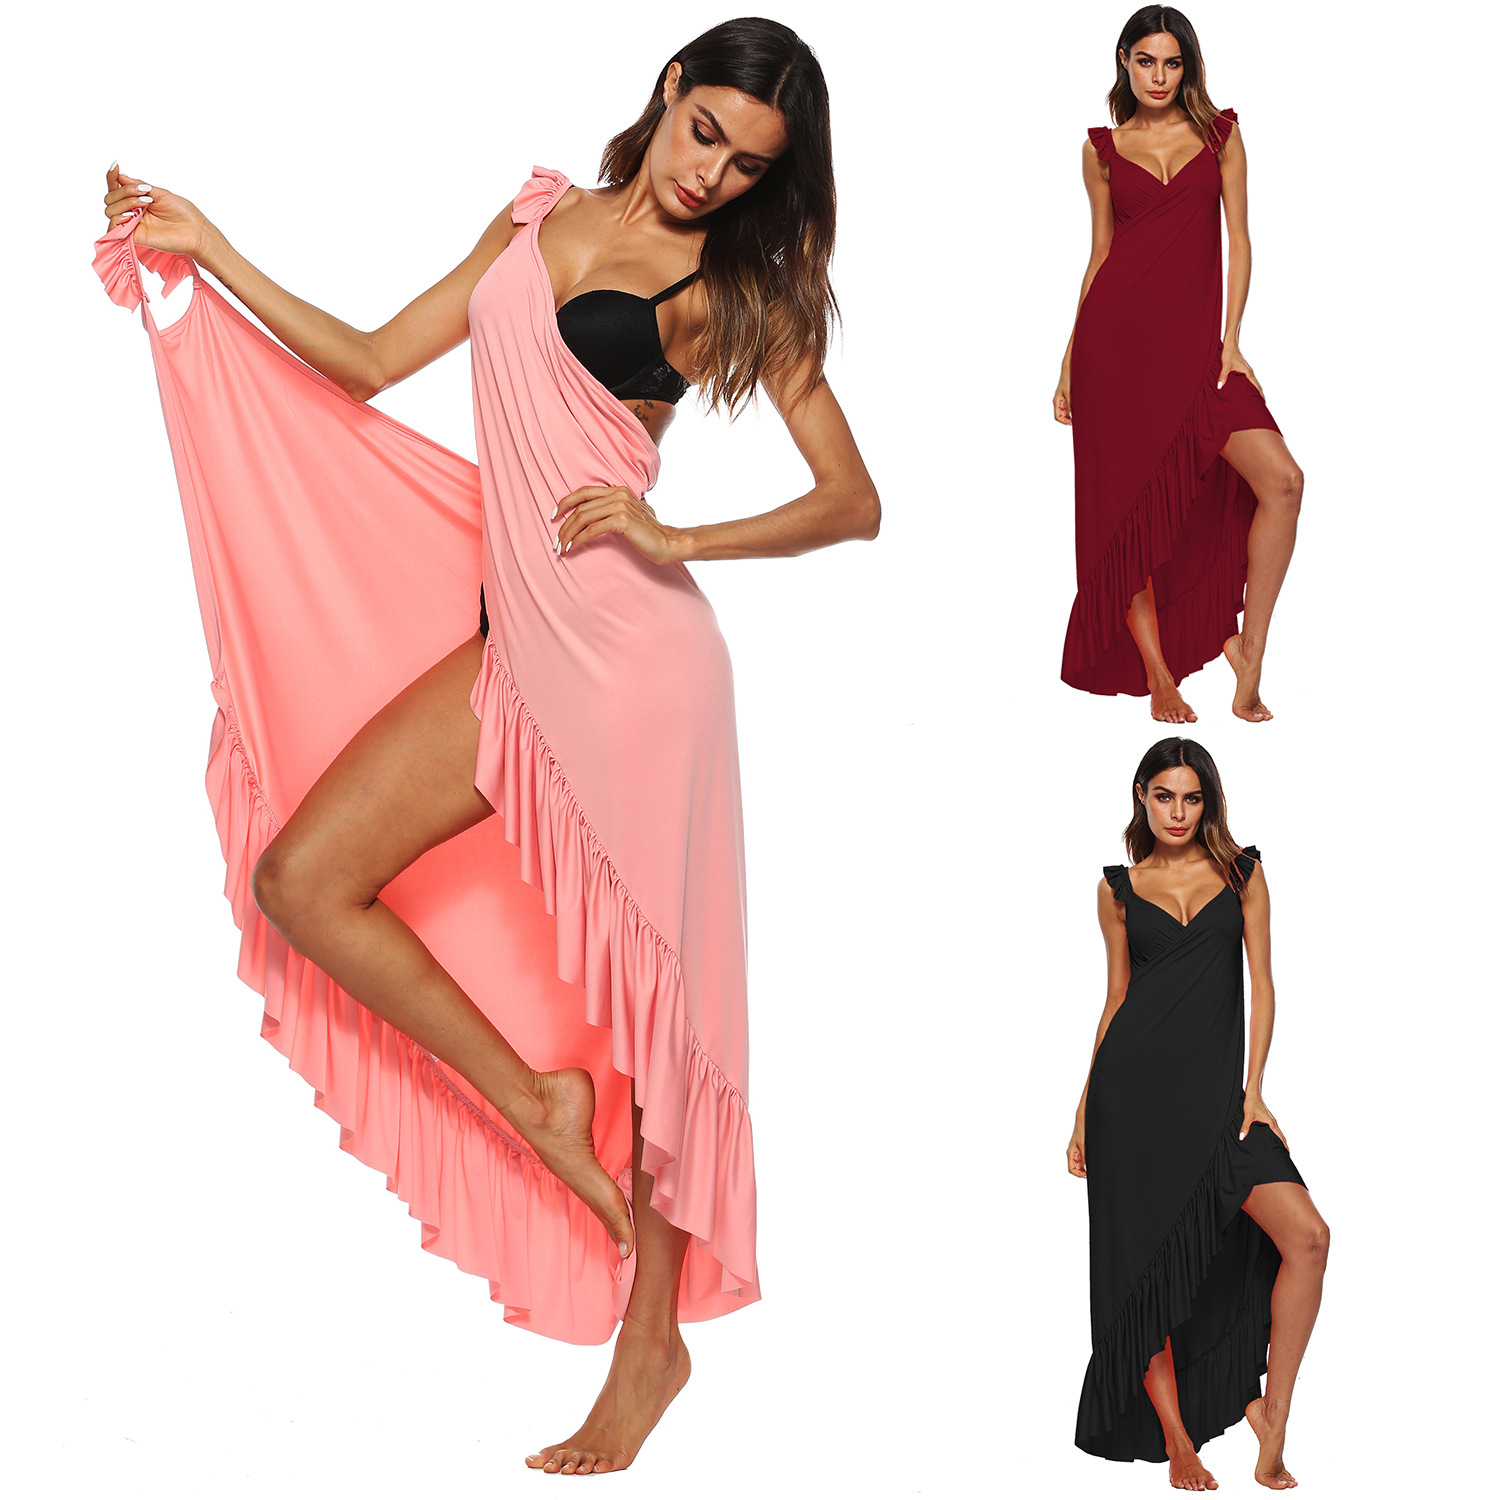 Cover Up Beach Dress Bathing Suit Women Robe De Plage Swimsuits Wear Tunic Womens Swimsuit Female Exclusively Falbala Outdoor